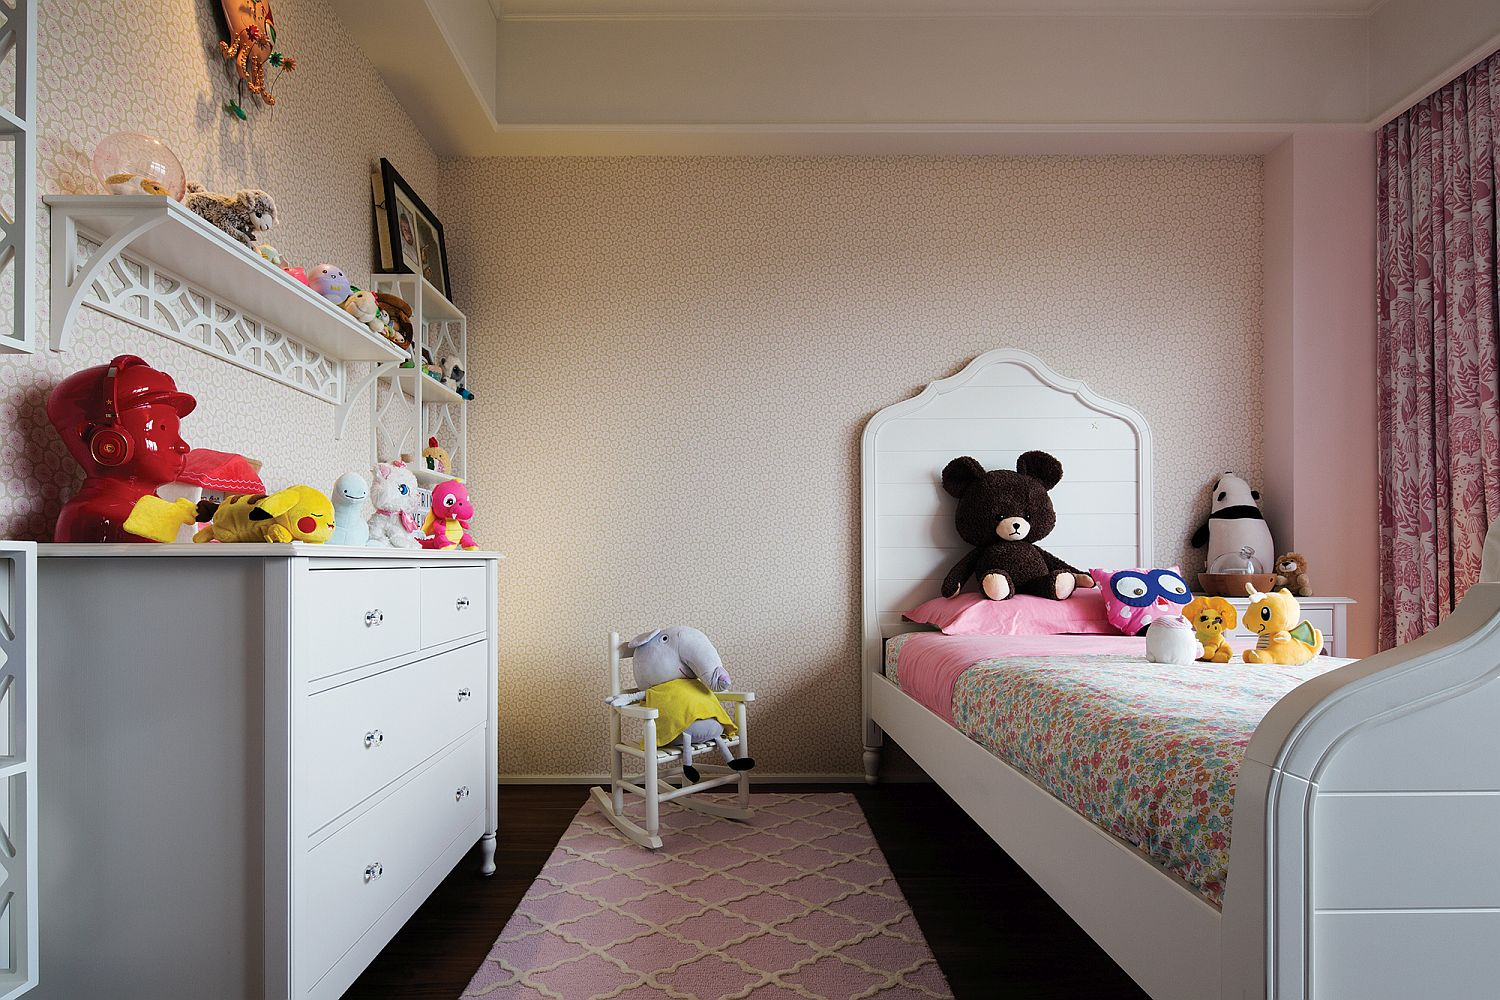 Bundle-of-soft-toys-add-color-to-the-kids-room-16187